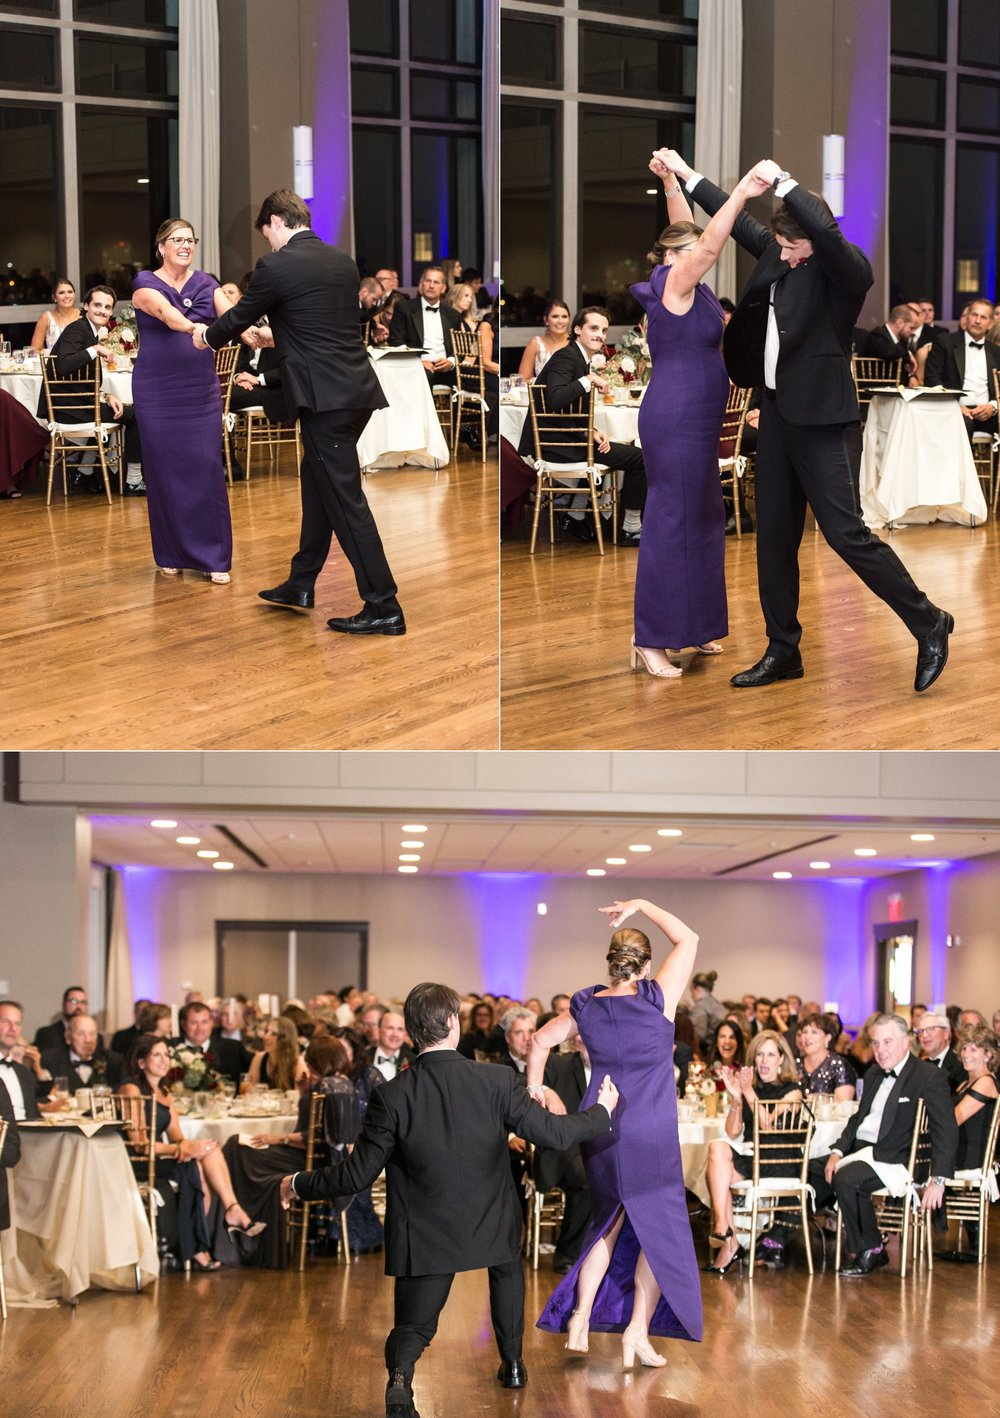 Parent dance at Holy Cross Hogan Campus Center Wedding